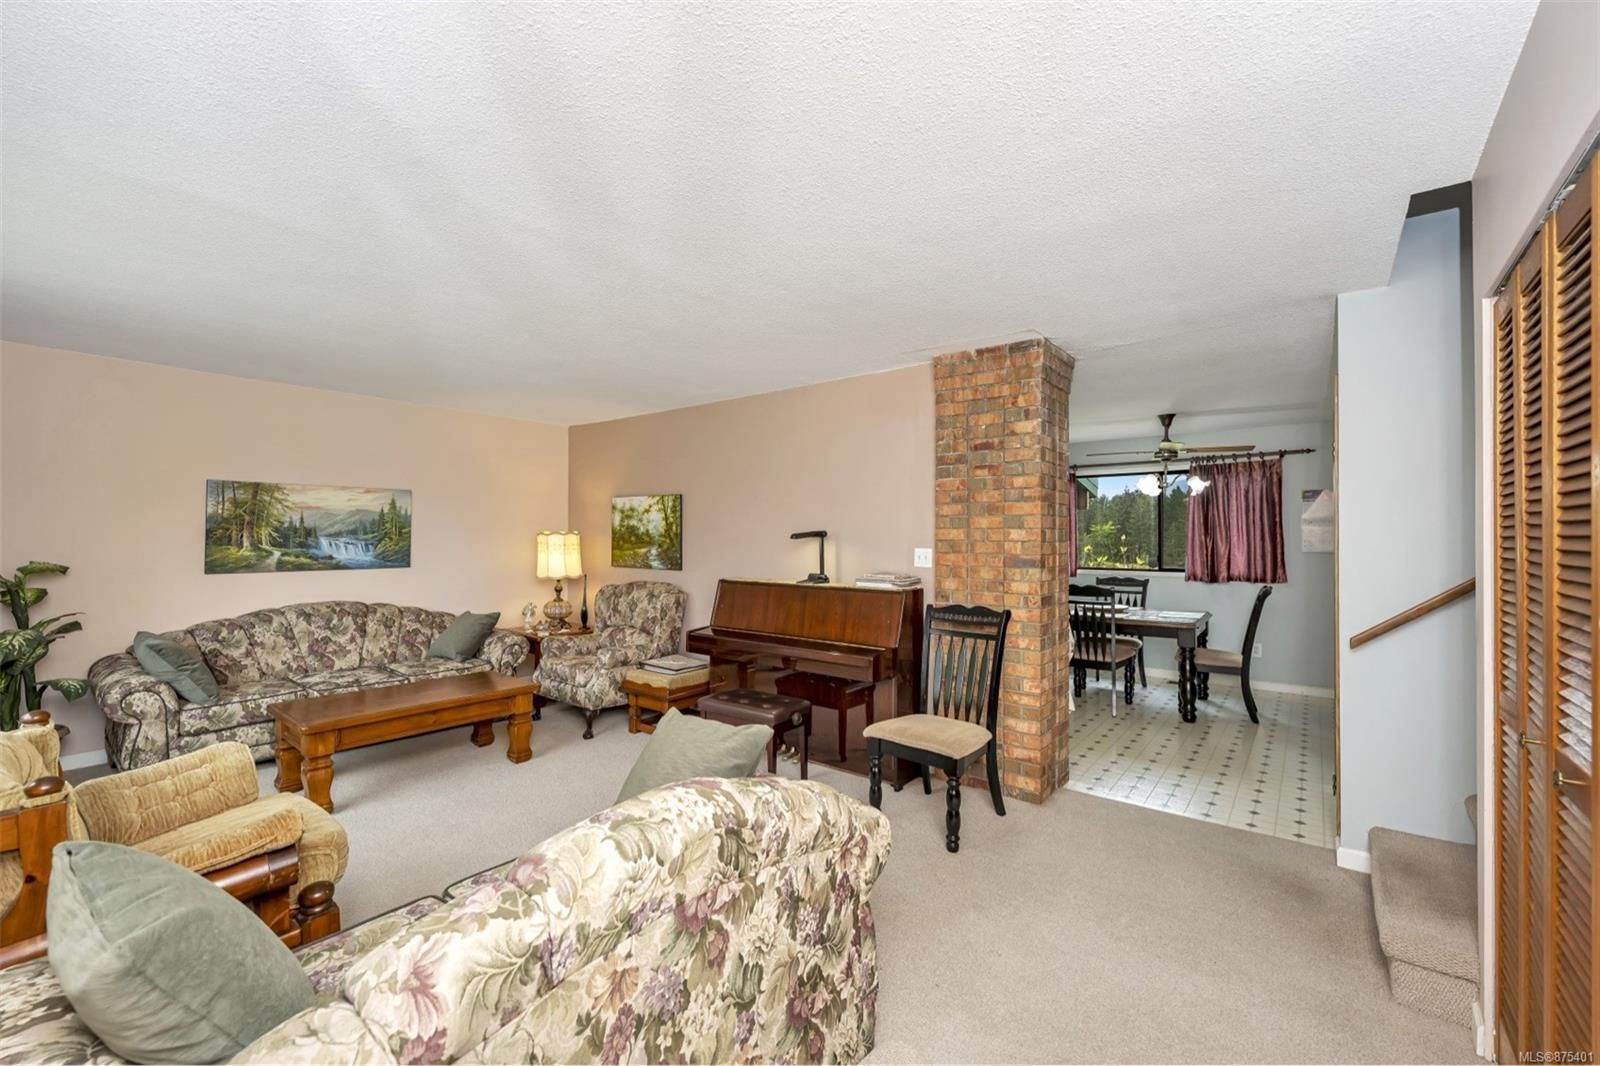 Photo 25: Photos: 6886 Lakes Rd in : Du East Duncan House for sale (Duncan)  : MLS®# 875401